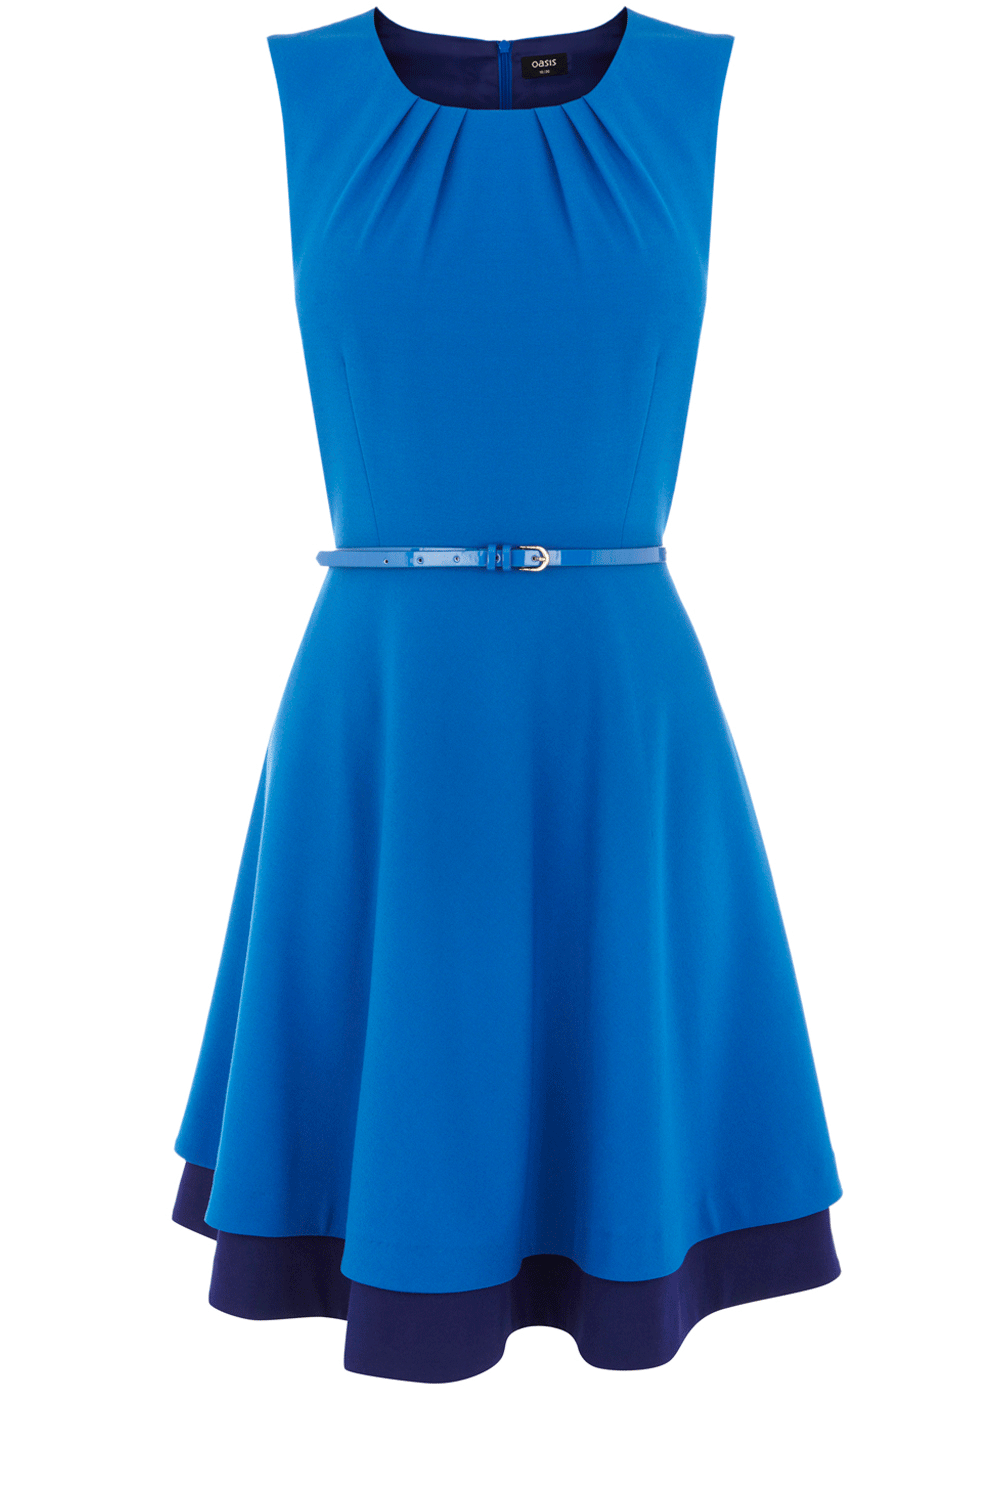 cfac6aa51946 Love this pretty blue dress from Oasis, especially the darker blue  underskirt